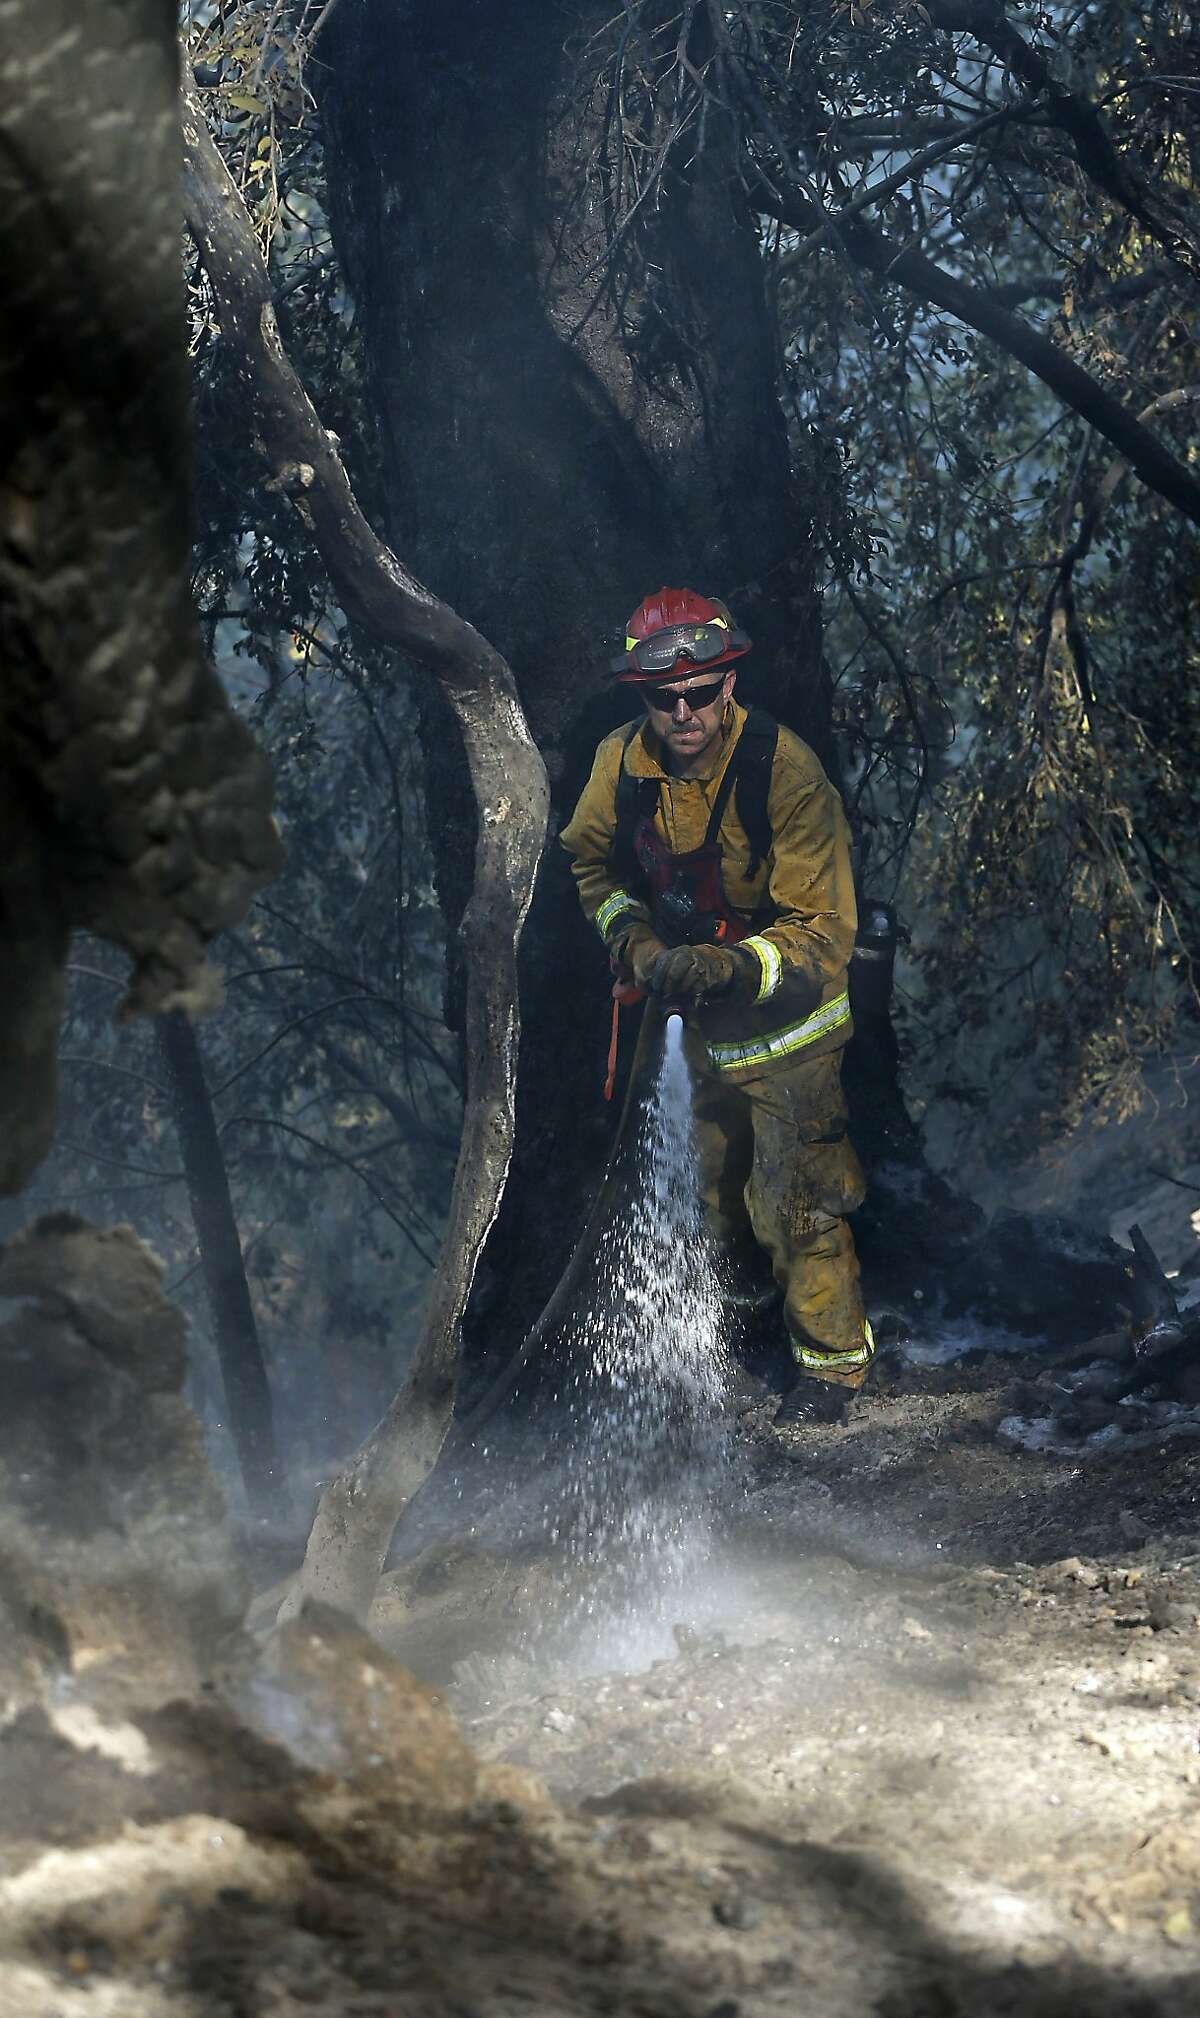 Firefighter Randy Browning hoses down a hot spot of a fire near Pollack Pines, Calif., Monday, Sept. 15, 2014. The fire, which started Sunday has consumed more than 3,000 acres and forced the evacuation of dozens of homes.(AP Photo/Rich Pedroncelli)